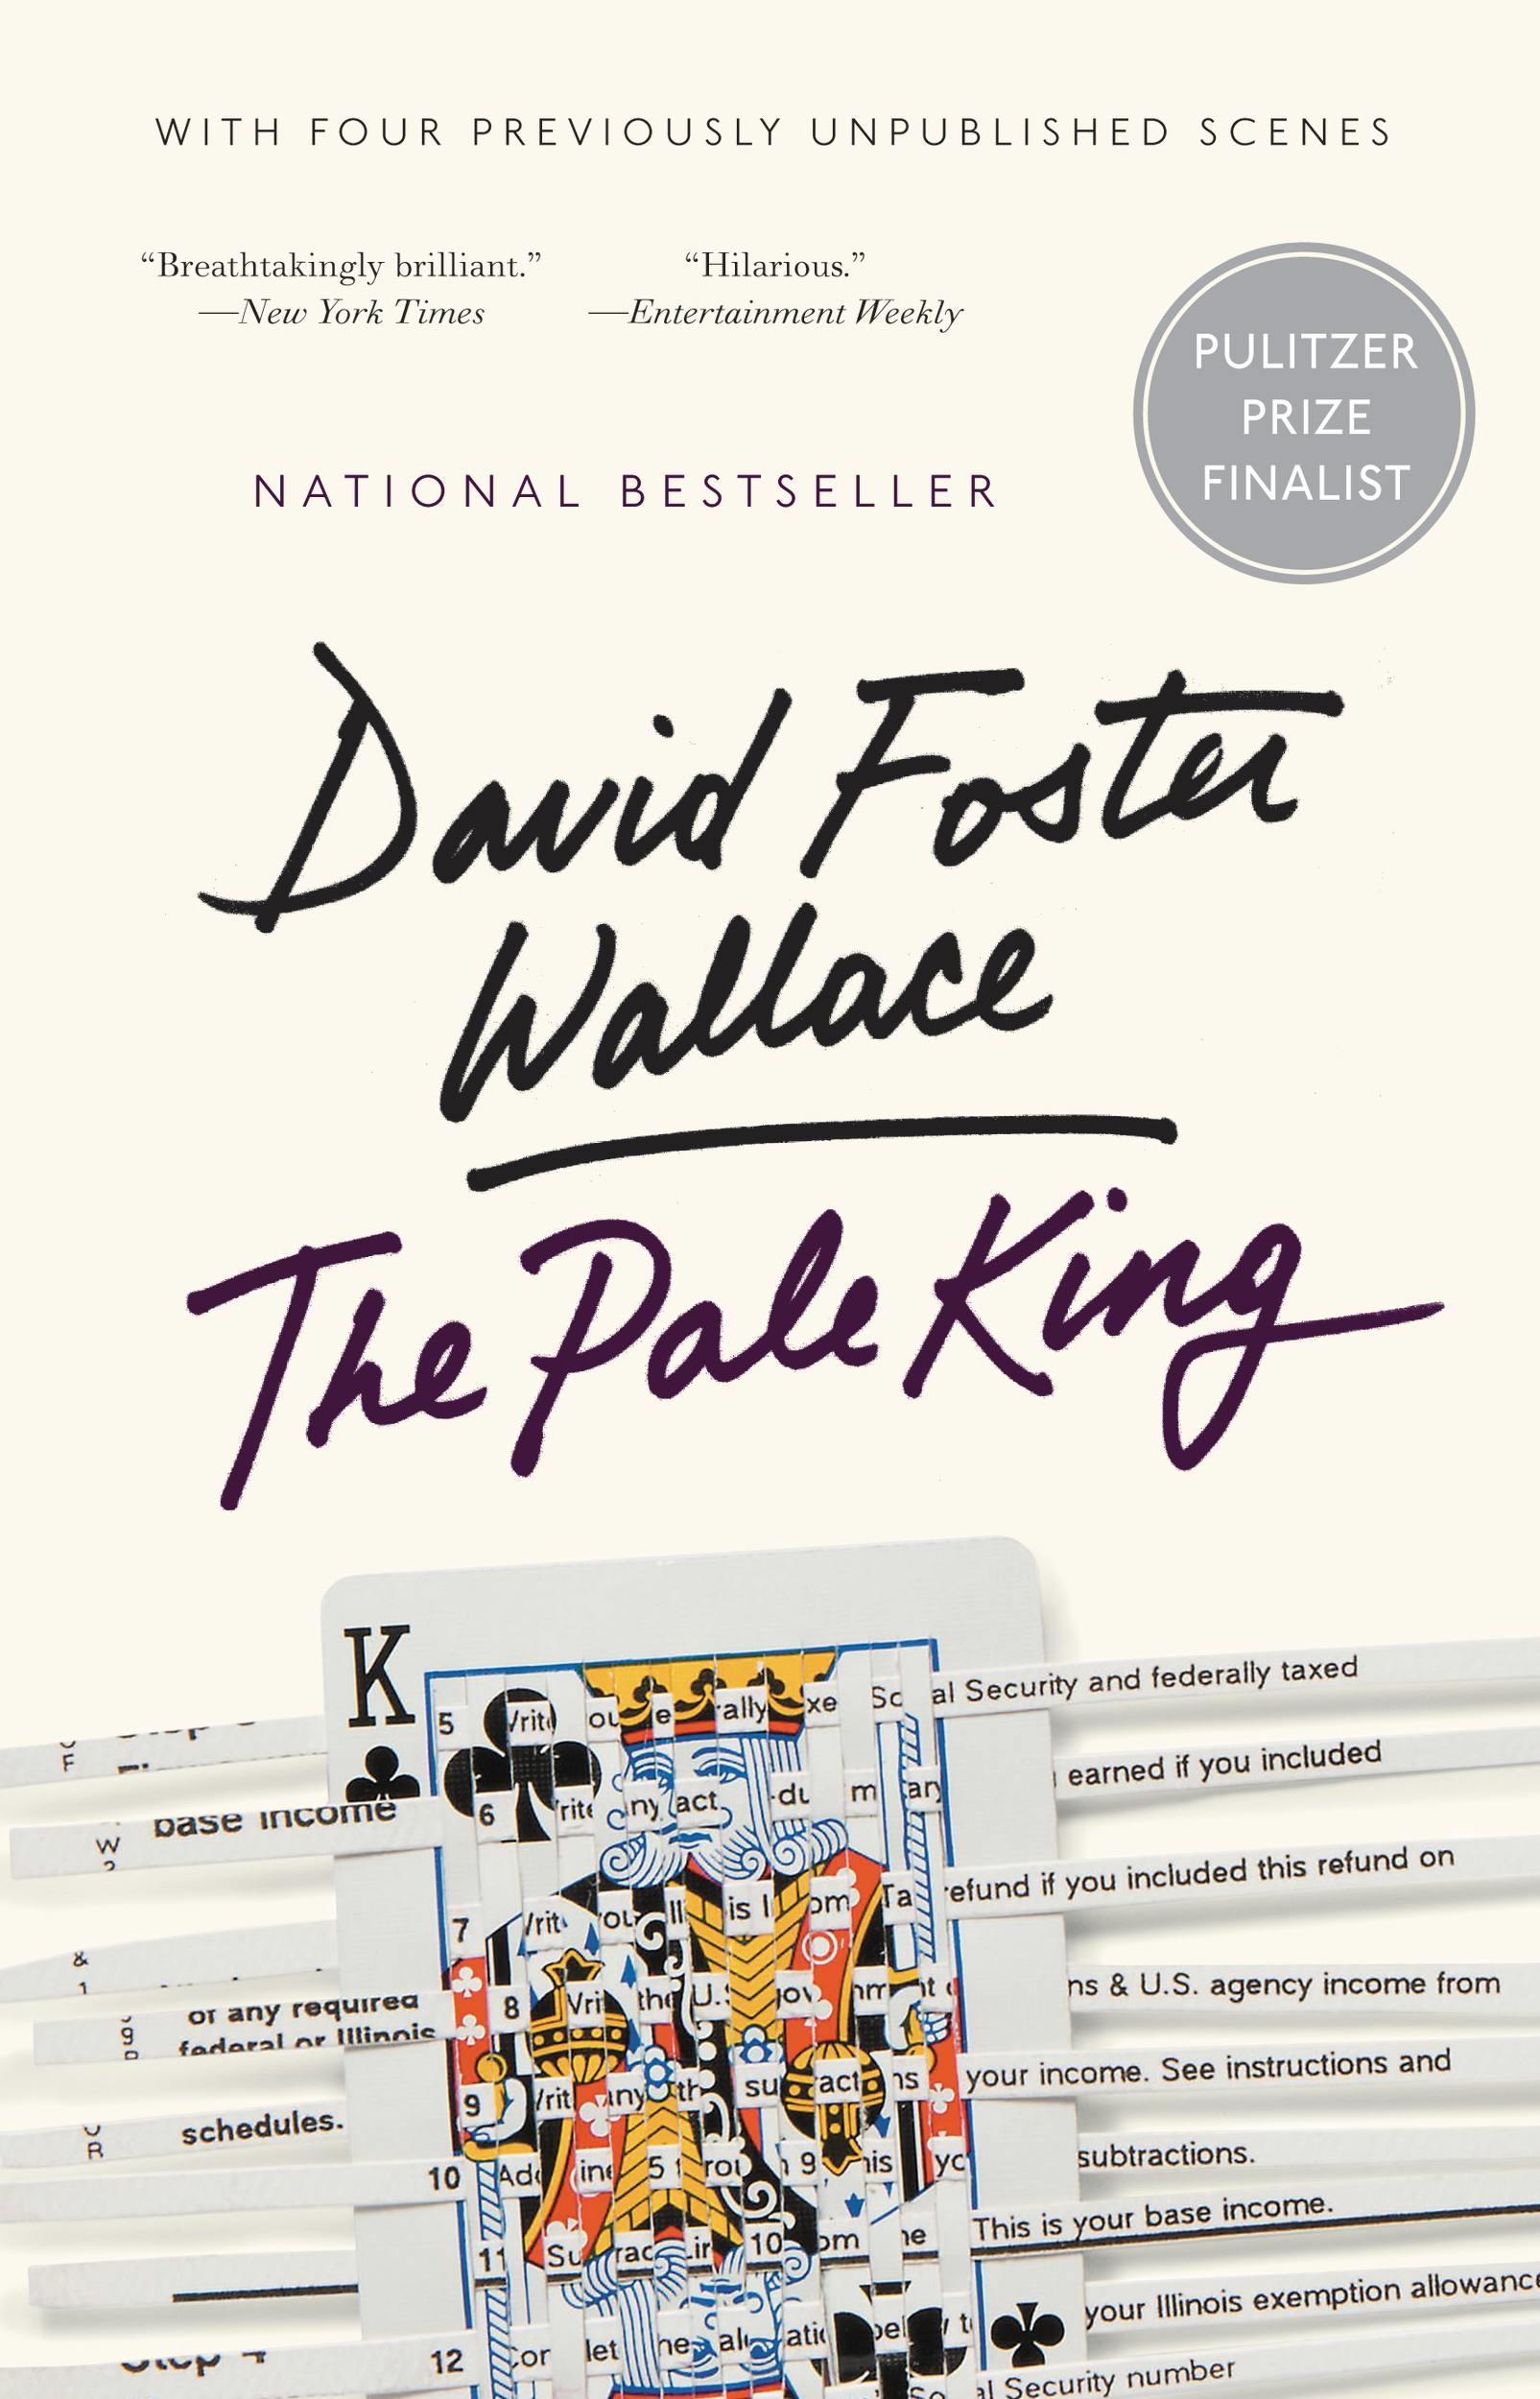 The Pale King By: David Foster Wallace